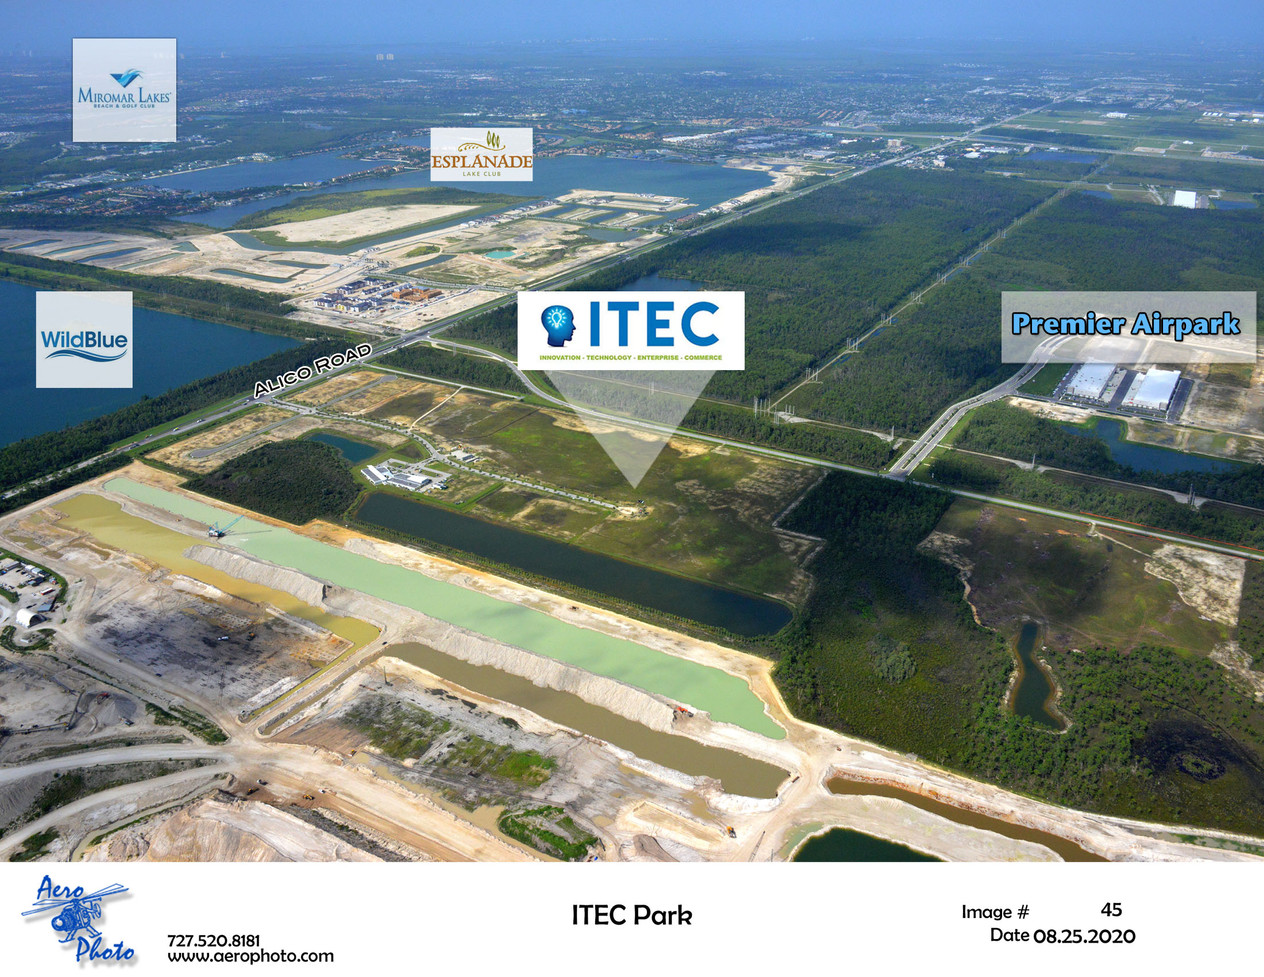 Alico ITEC is in a prime location with growth on the horizon